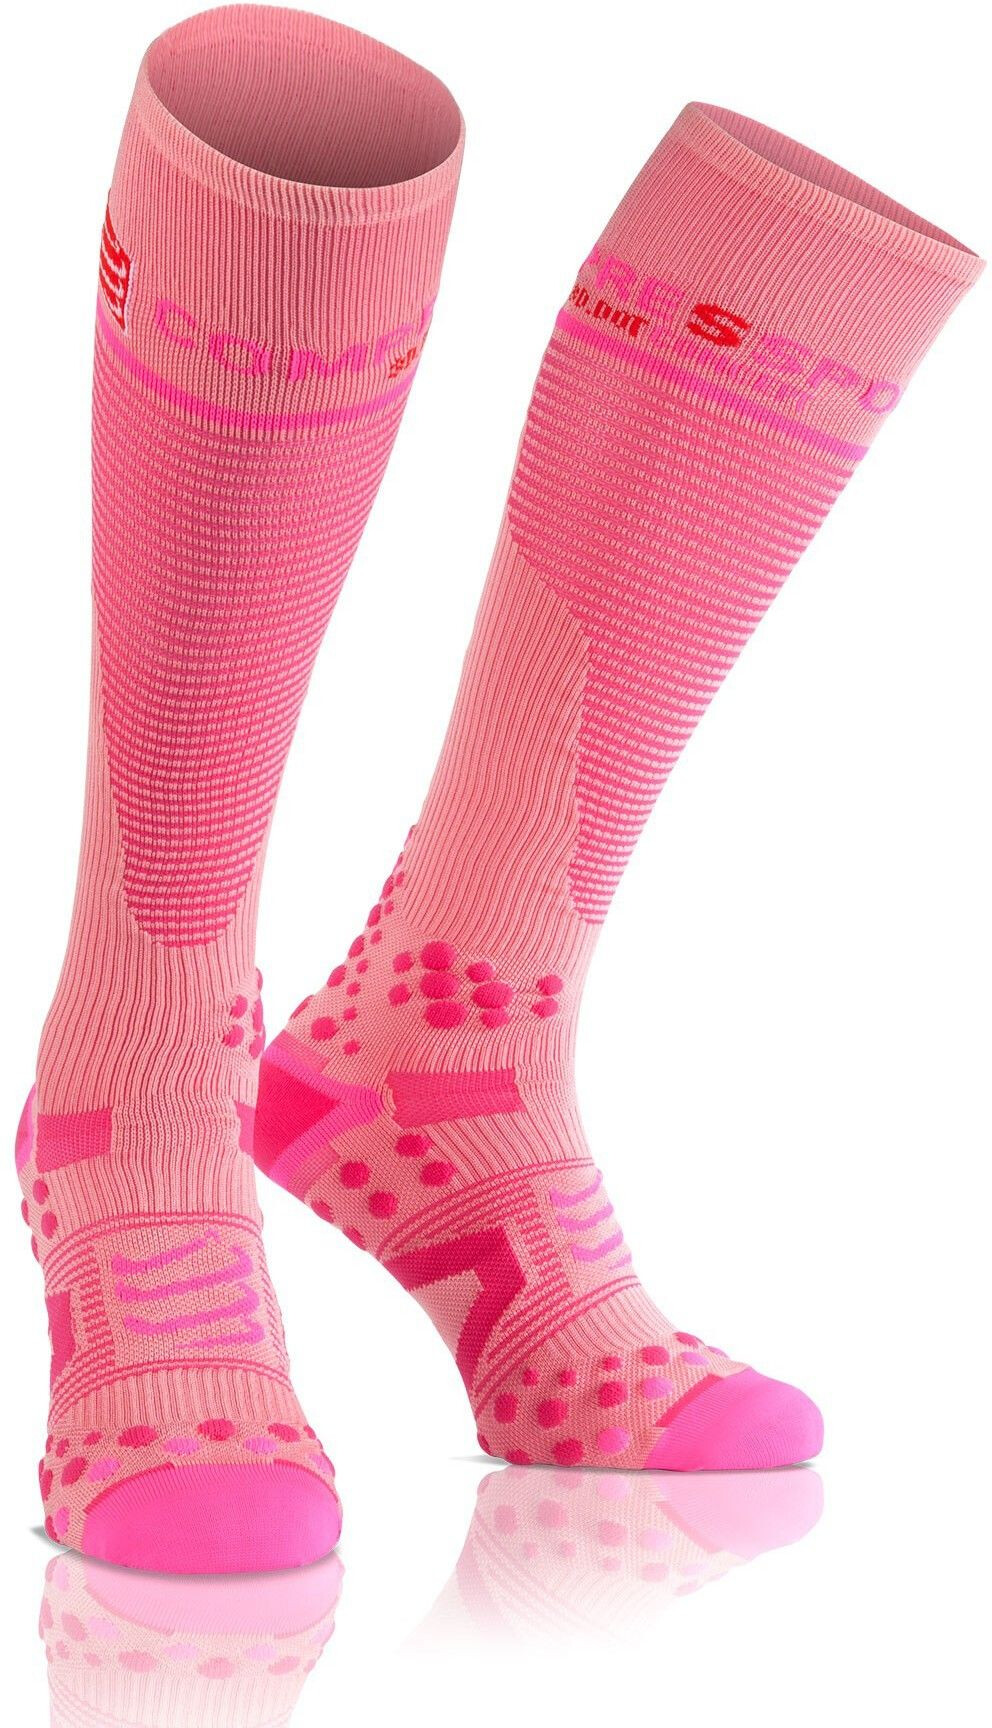 super popular f42e2 81a54 Compressport Full Socks V2 1 Pink.jpg